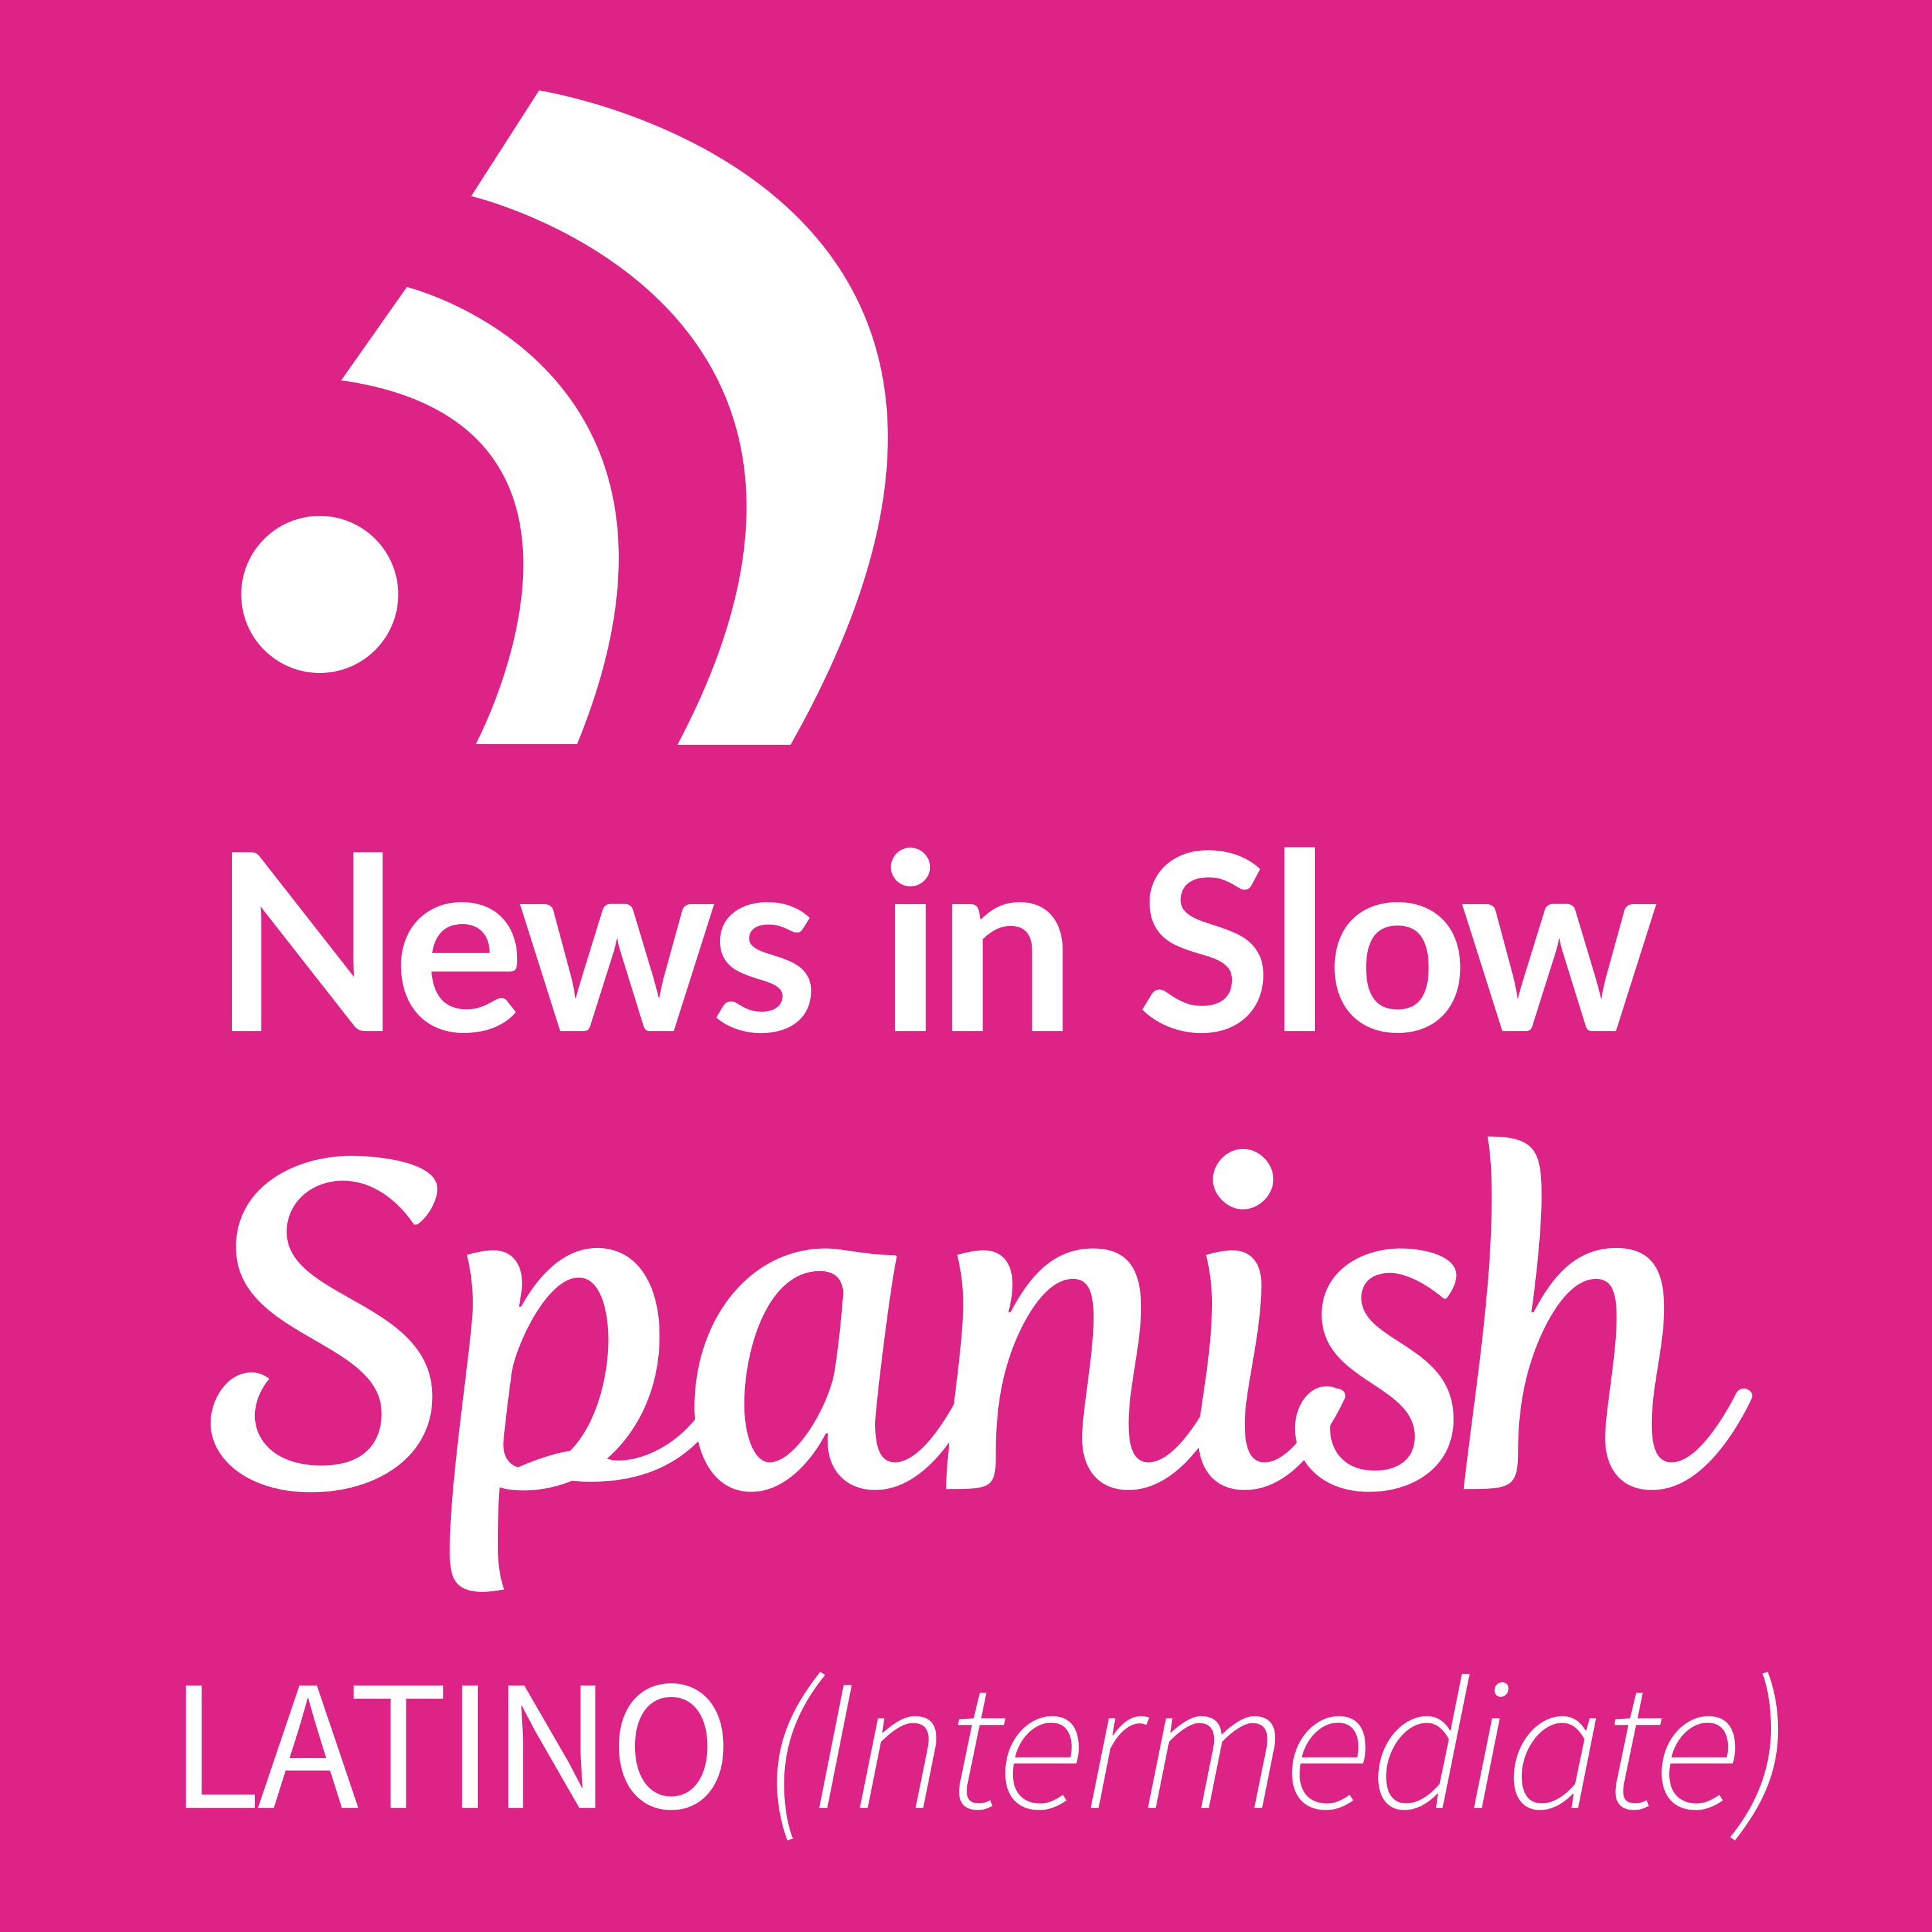 News in Slow Spanish Latino - # 161 - Language learning in the context of current events